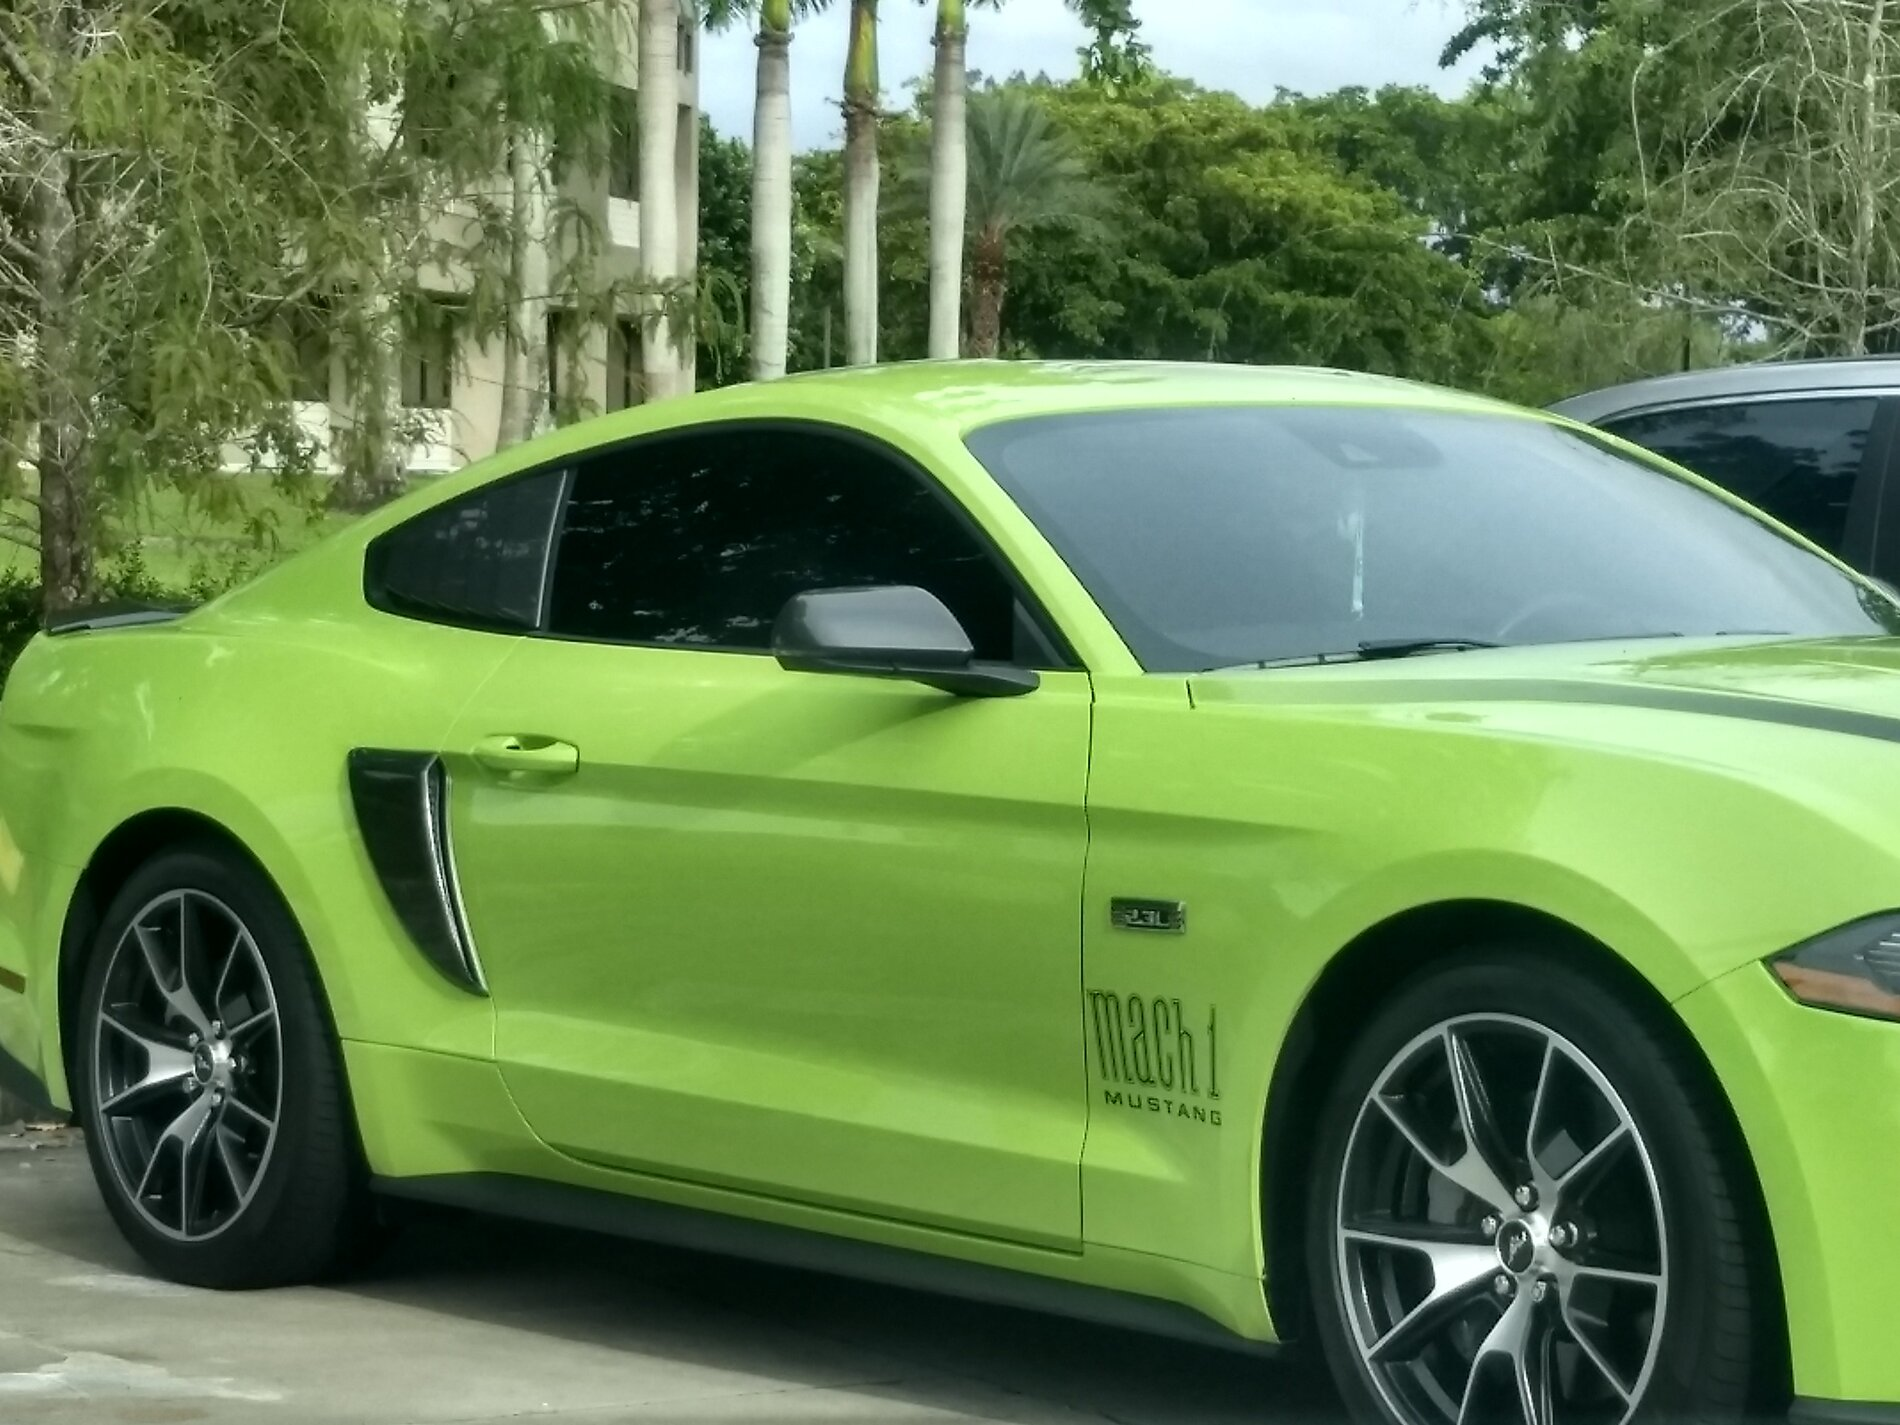 HPP Mustang with Mach1 stickers 1.jpg